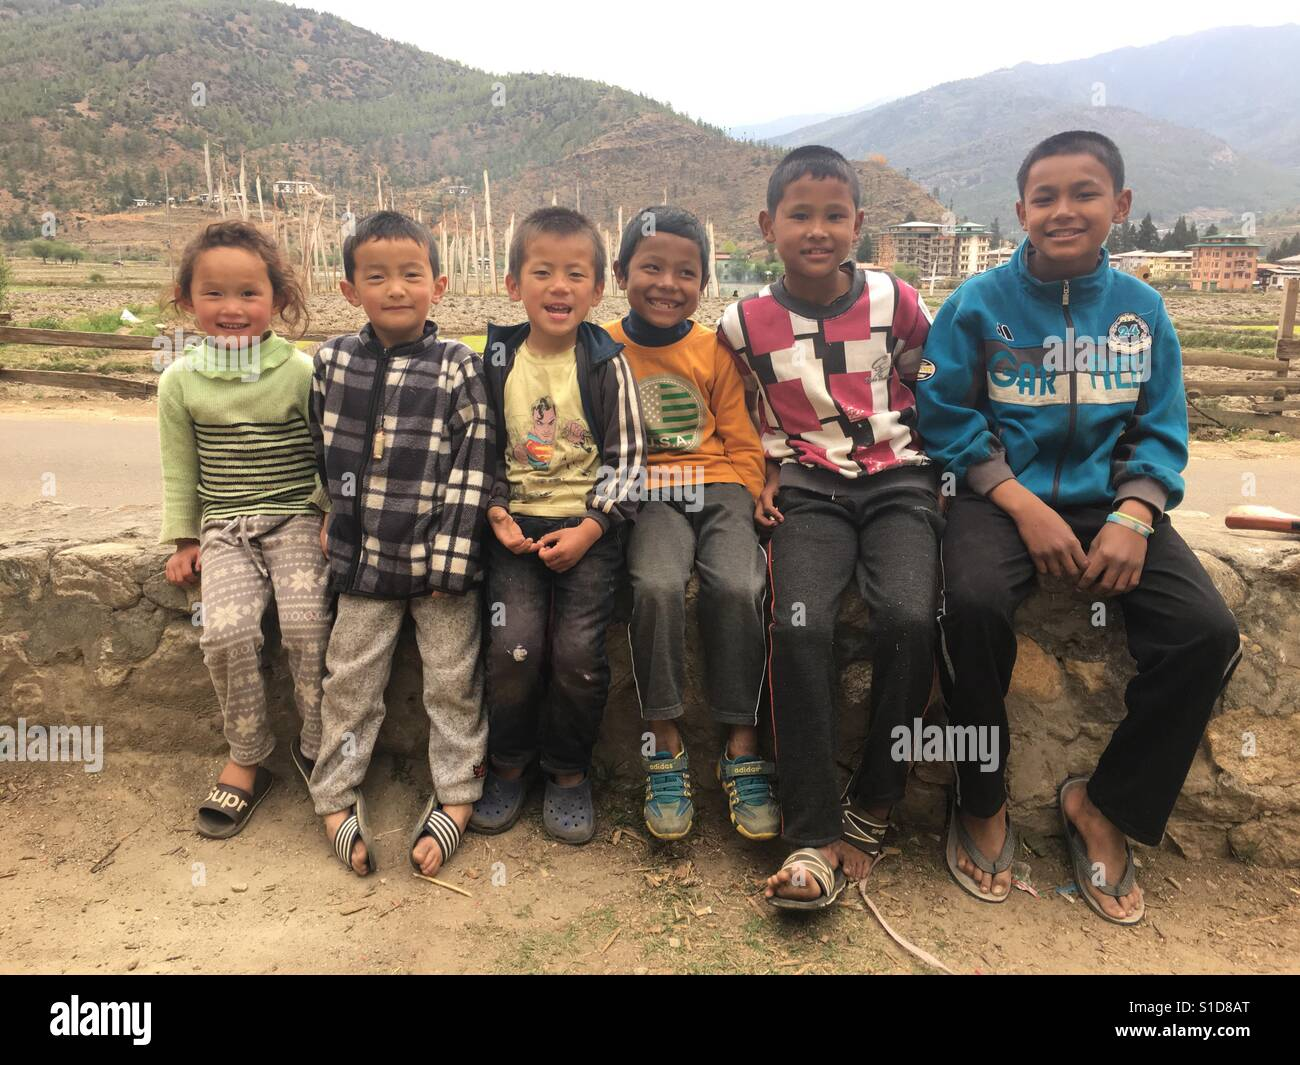 Diverse kids of different religions together bonded with beautiful friendship in Bhutan. - Stock Image